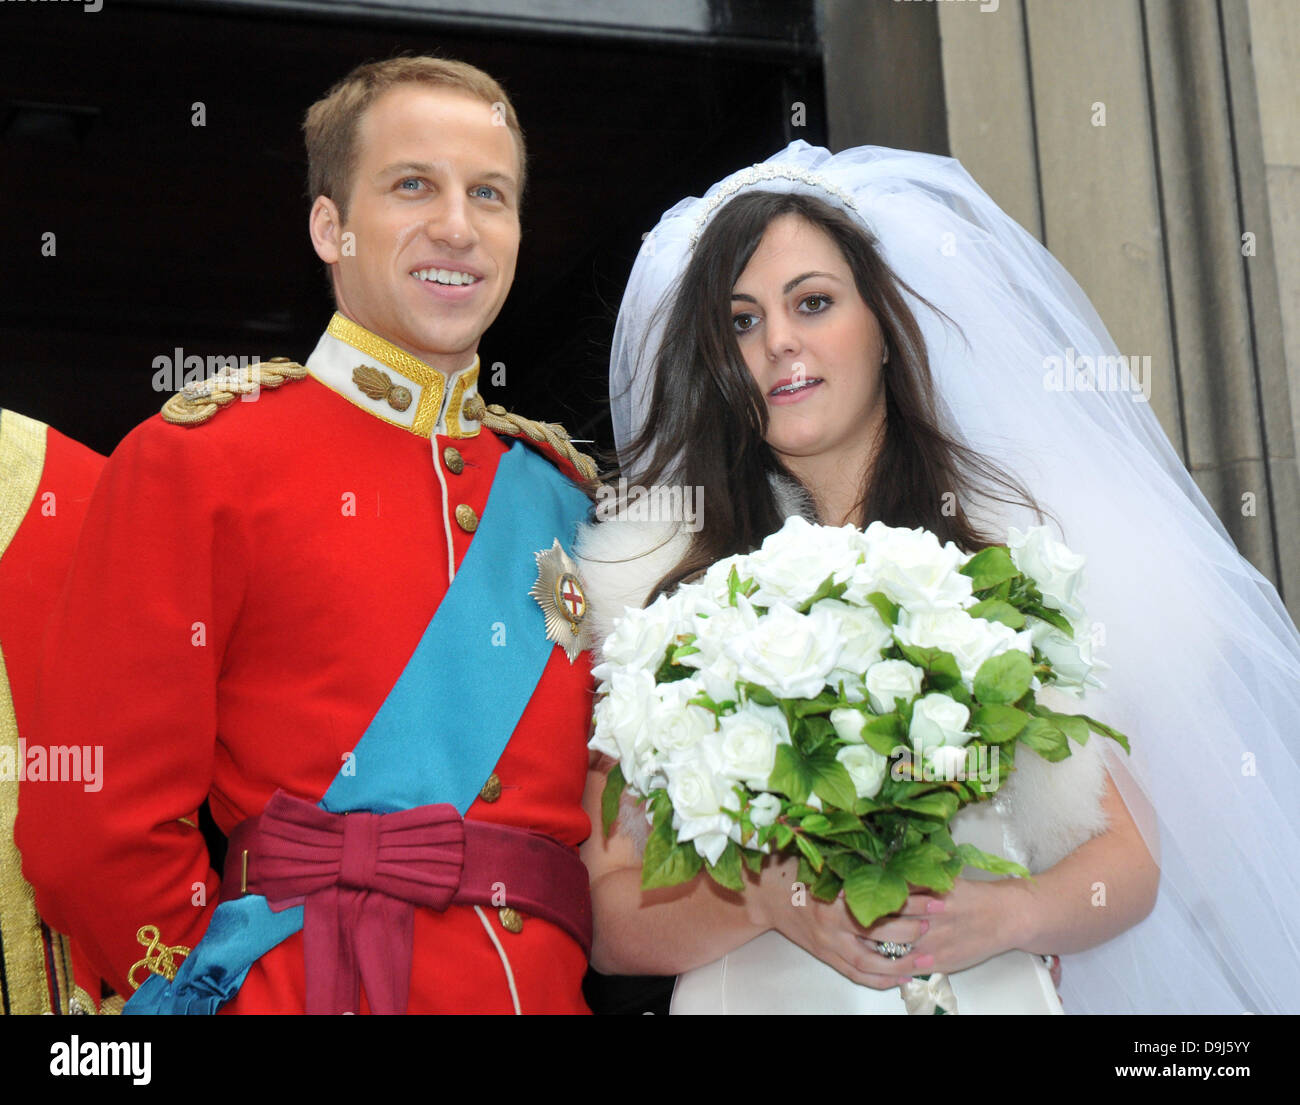 A Royal Look-A-Like Wedding Prince William and Kate ...